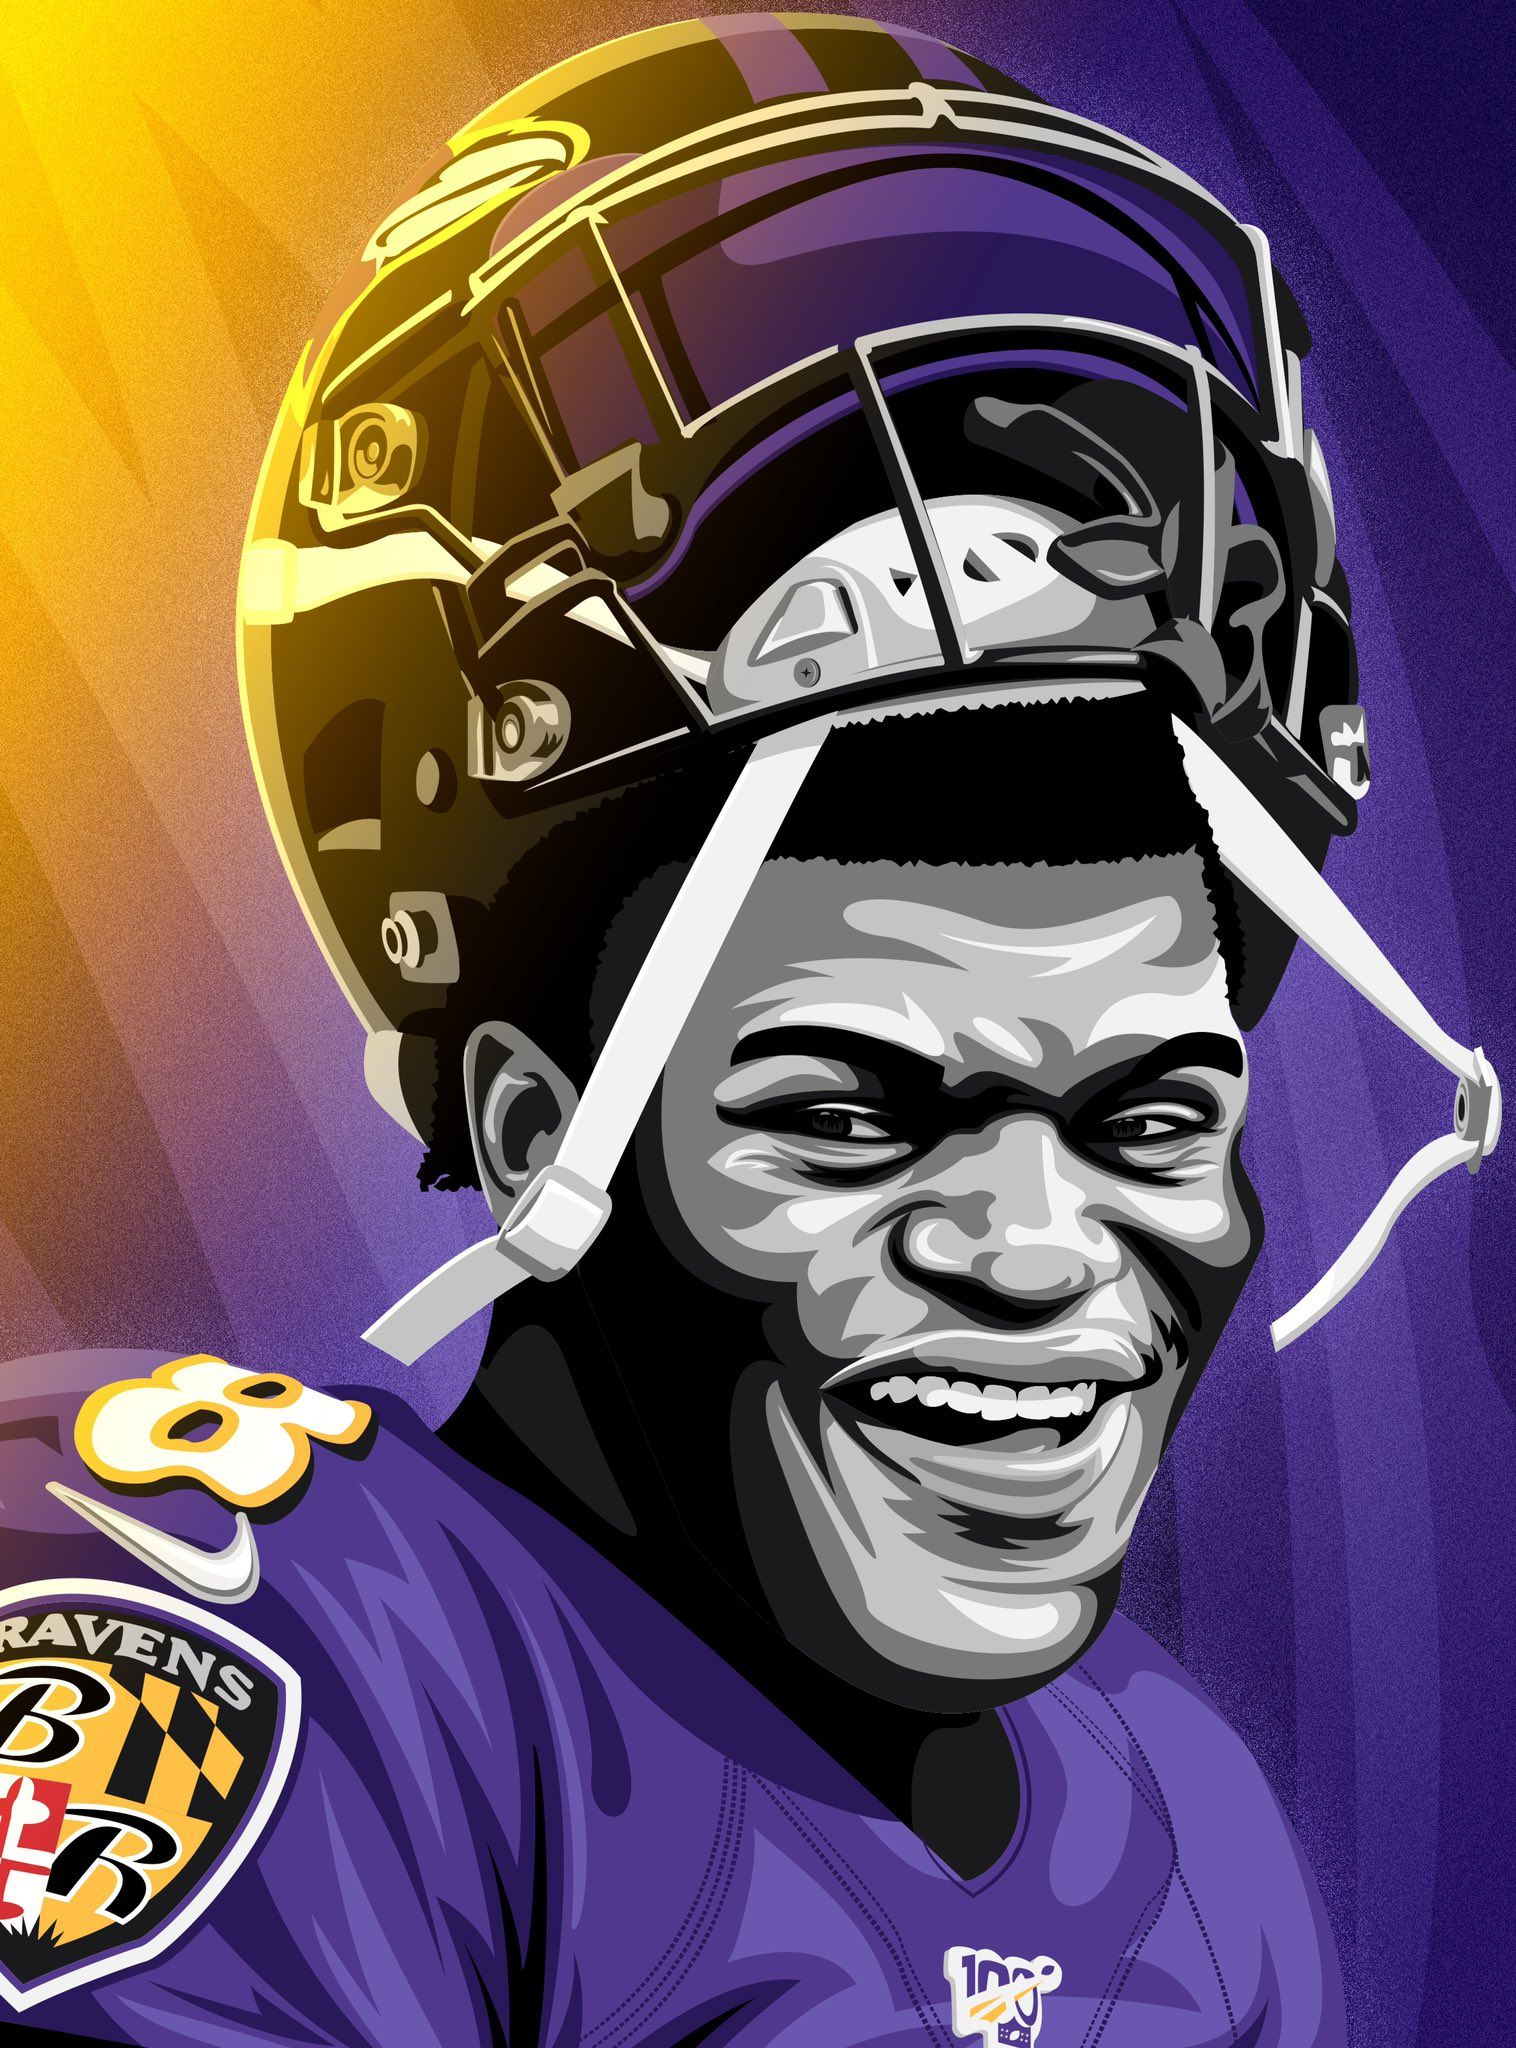 Kyle K On Twitter Baltimore Ravens Football Nfl Football Art Ravens Football